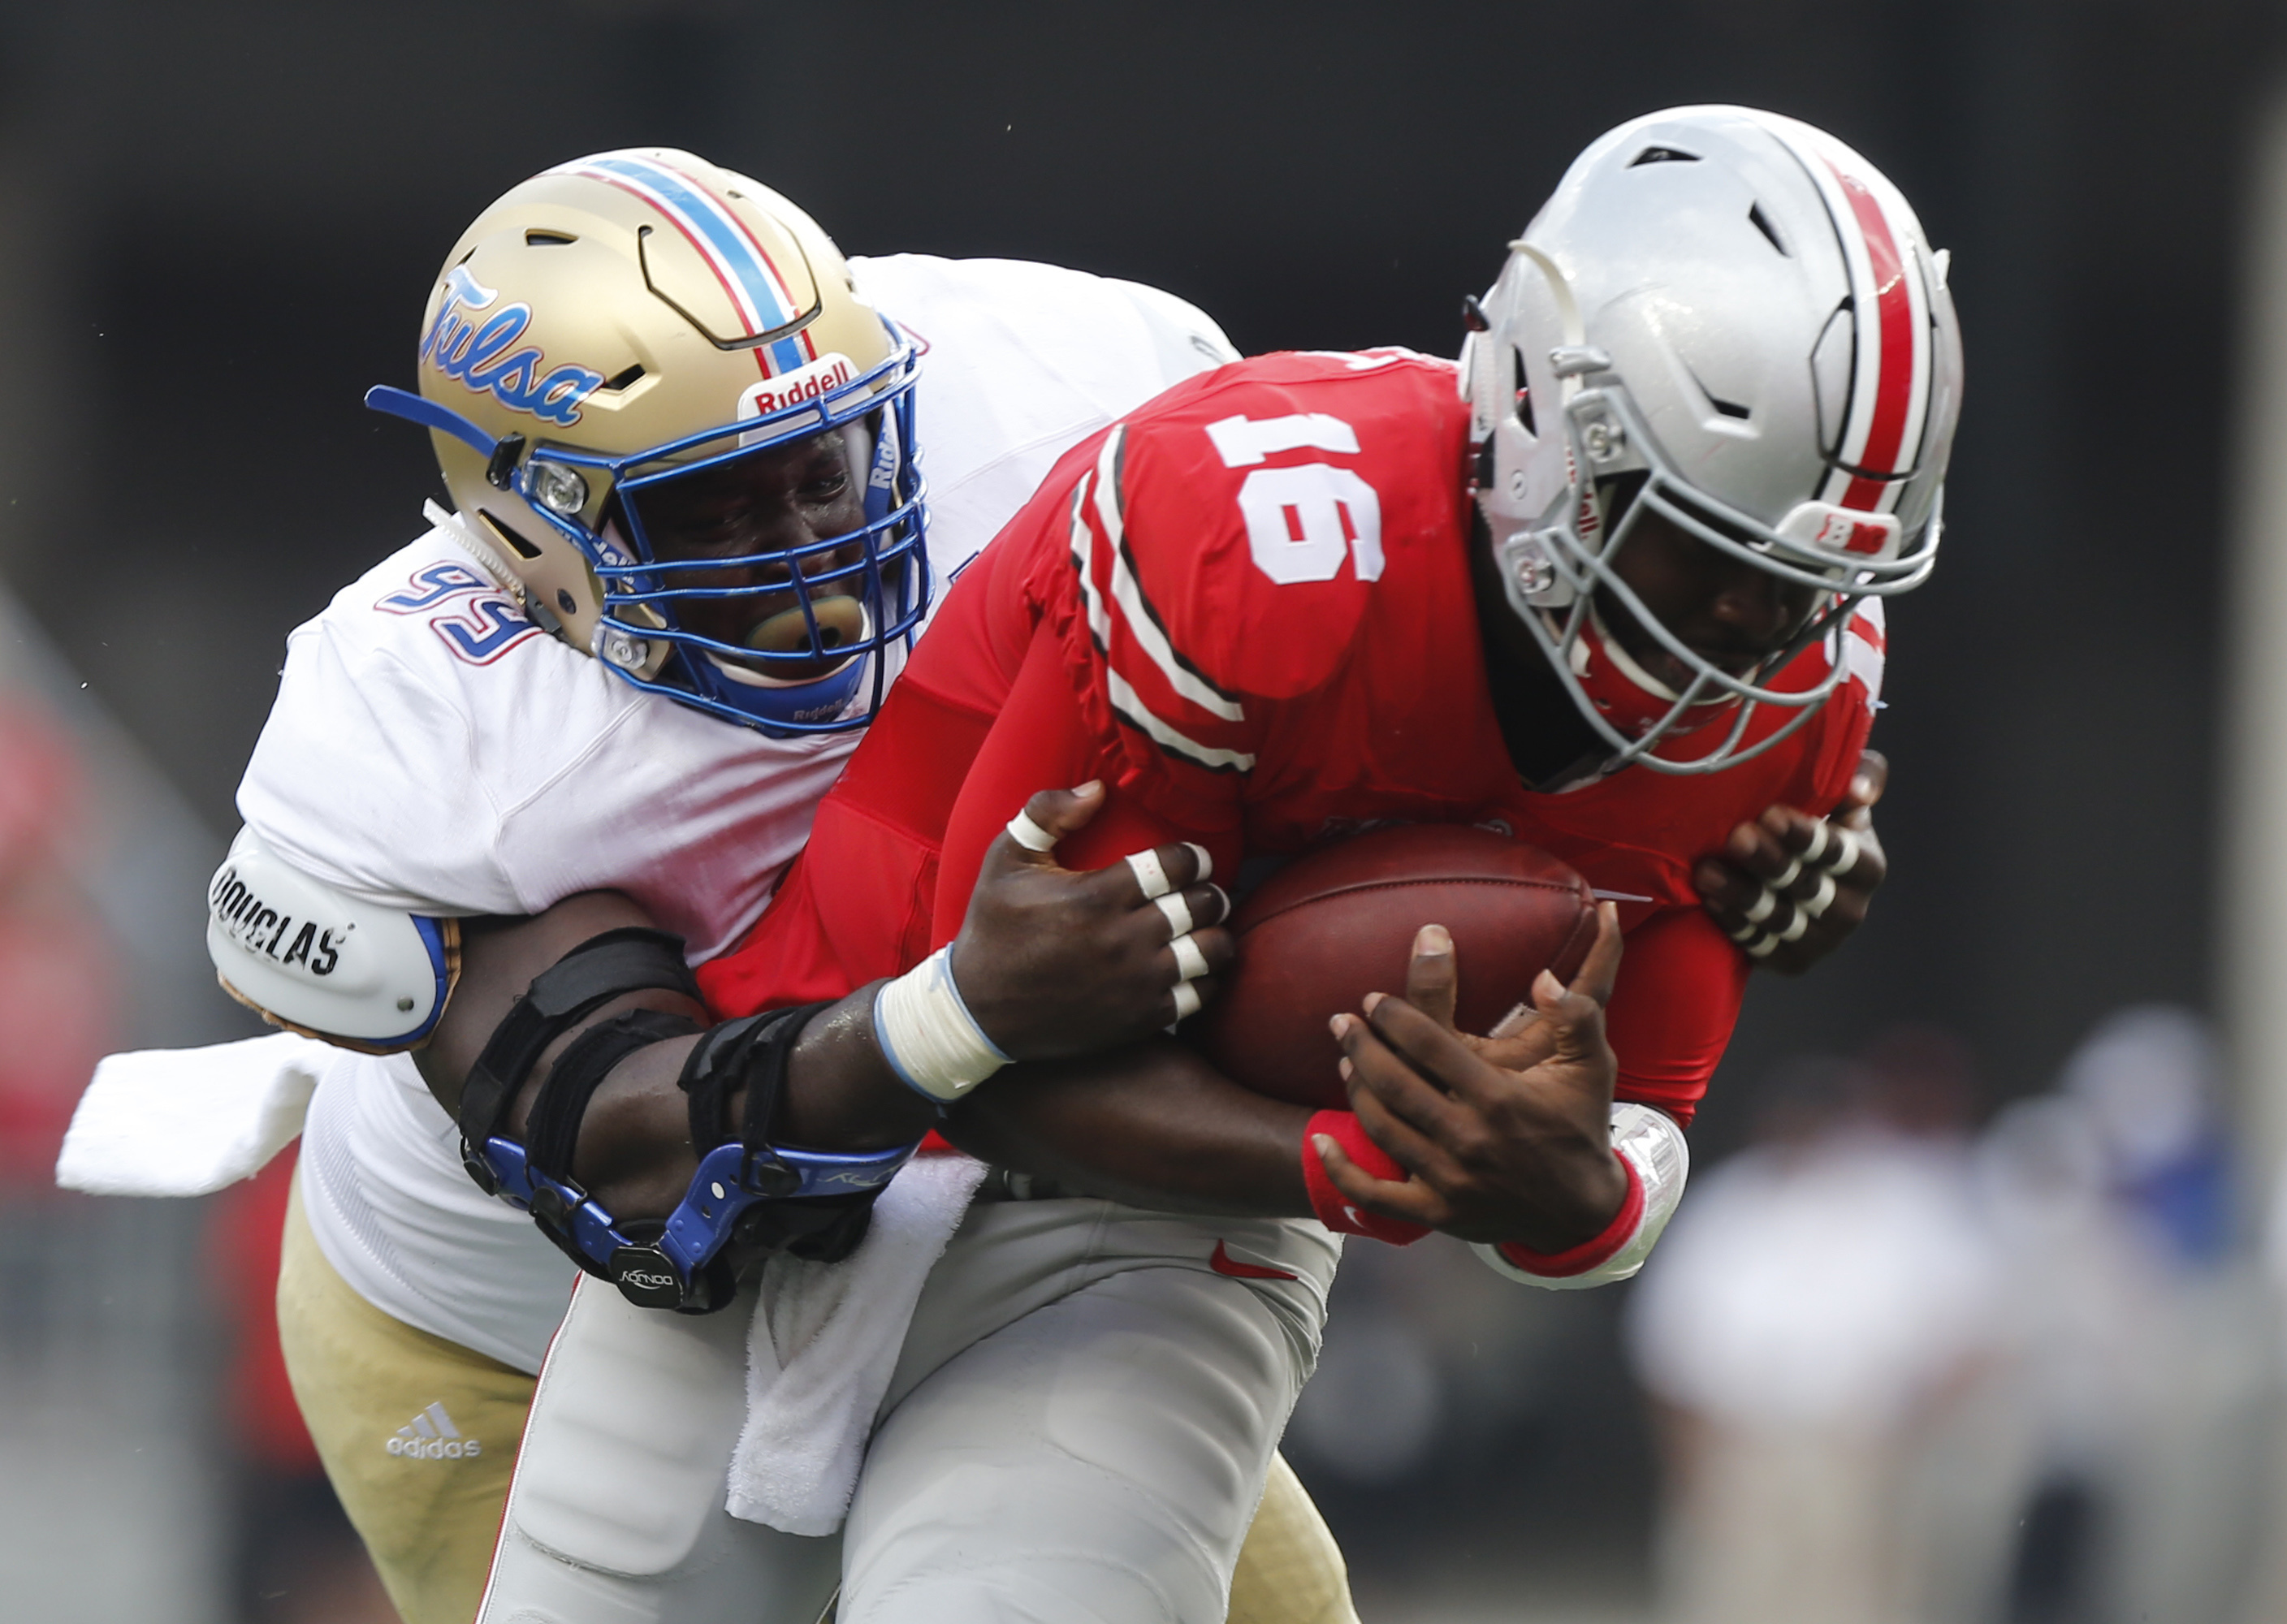 Tulsa defensive lineman Jerry Uwaezuoke, left, tackles Ohio State quarterback J.T. Barrett during the first half of an NCAA college football game, Saturday, Sept. 10, 2016, in Columbus, Ohio. (AP Photo/Jay LaPrete)